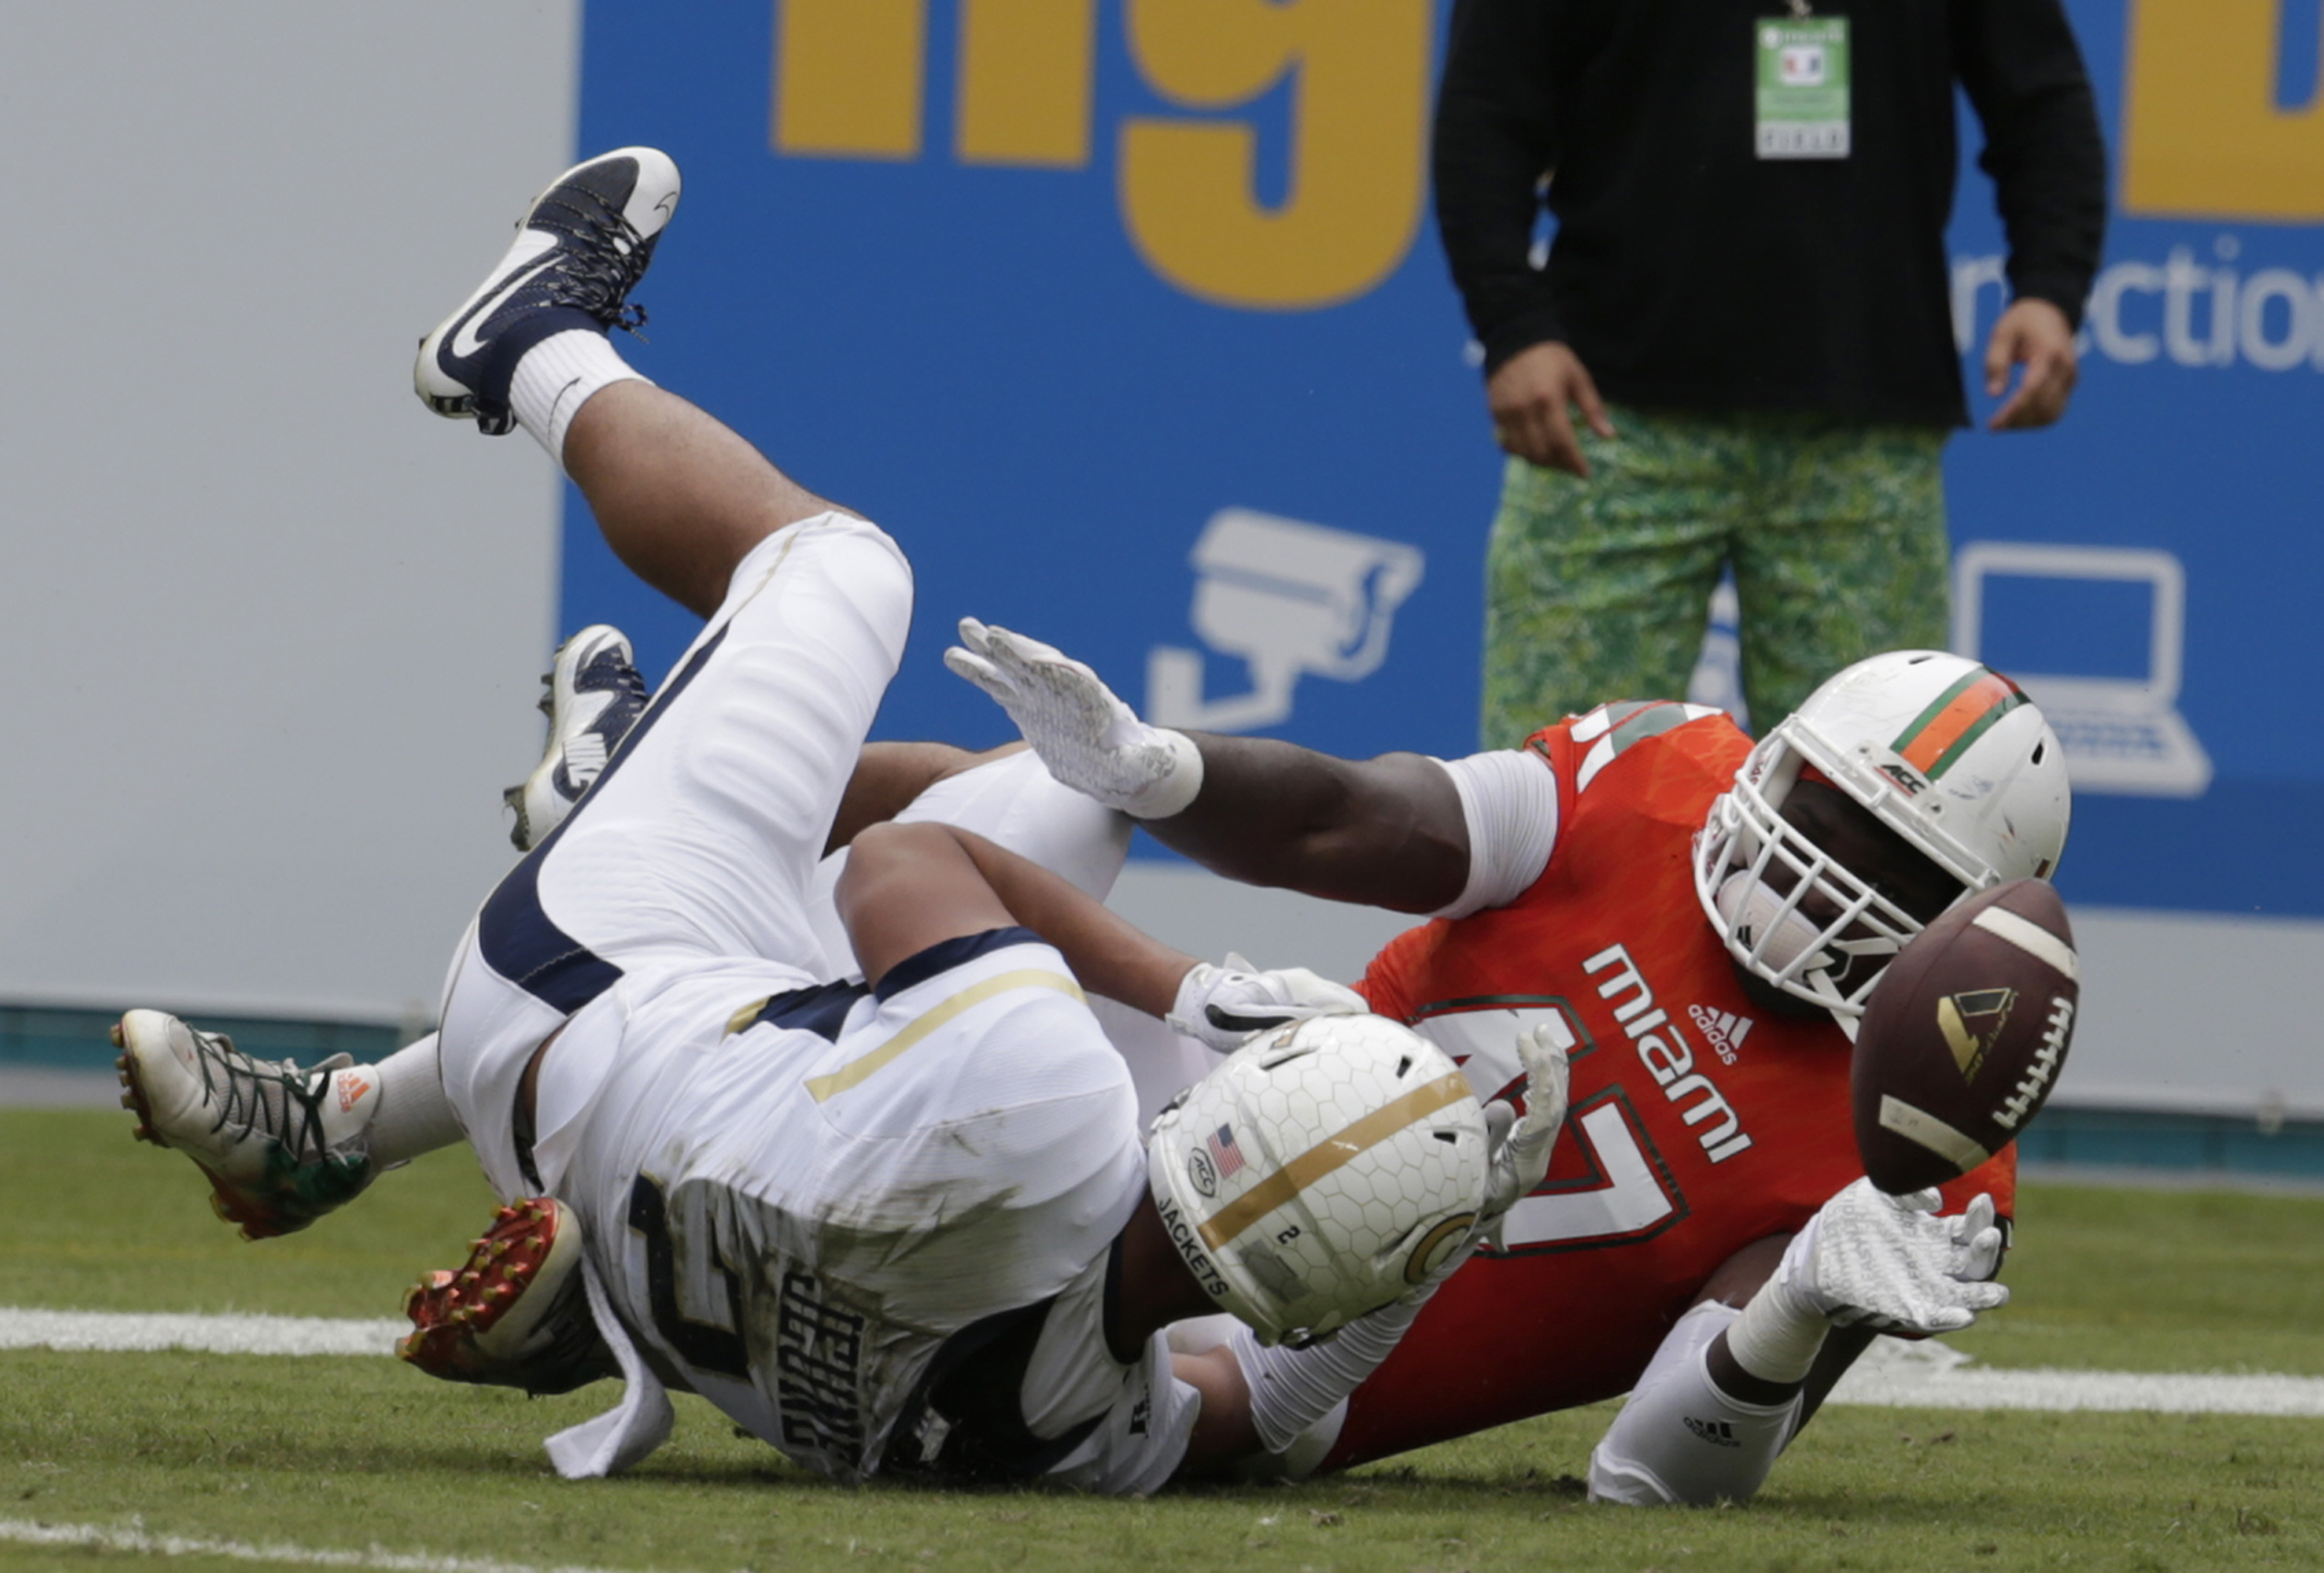 Miami defensive lineman Ufomba Kamalu (47) fumbles the ball he is brought down by Georgia Tech wide receiver Ricky Jeune after recovering a Georgia Tech fumble in the first half of an NCAA college football game, Saturday, Nov. 21, 2015 in Miami Gardens, F